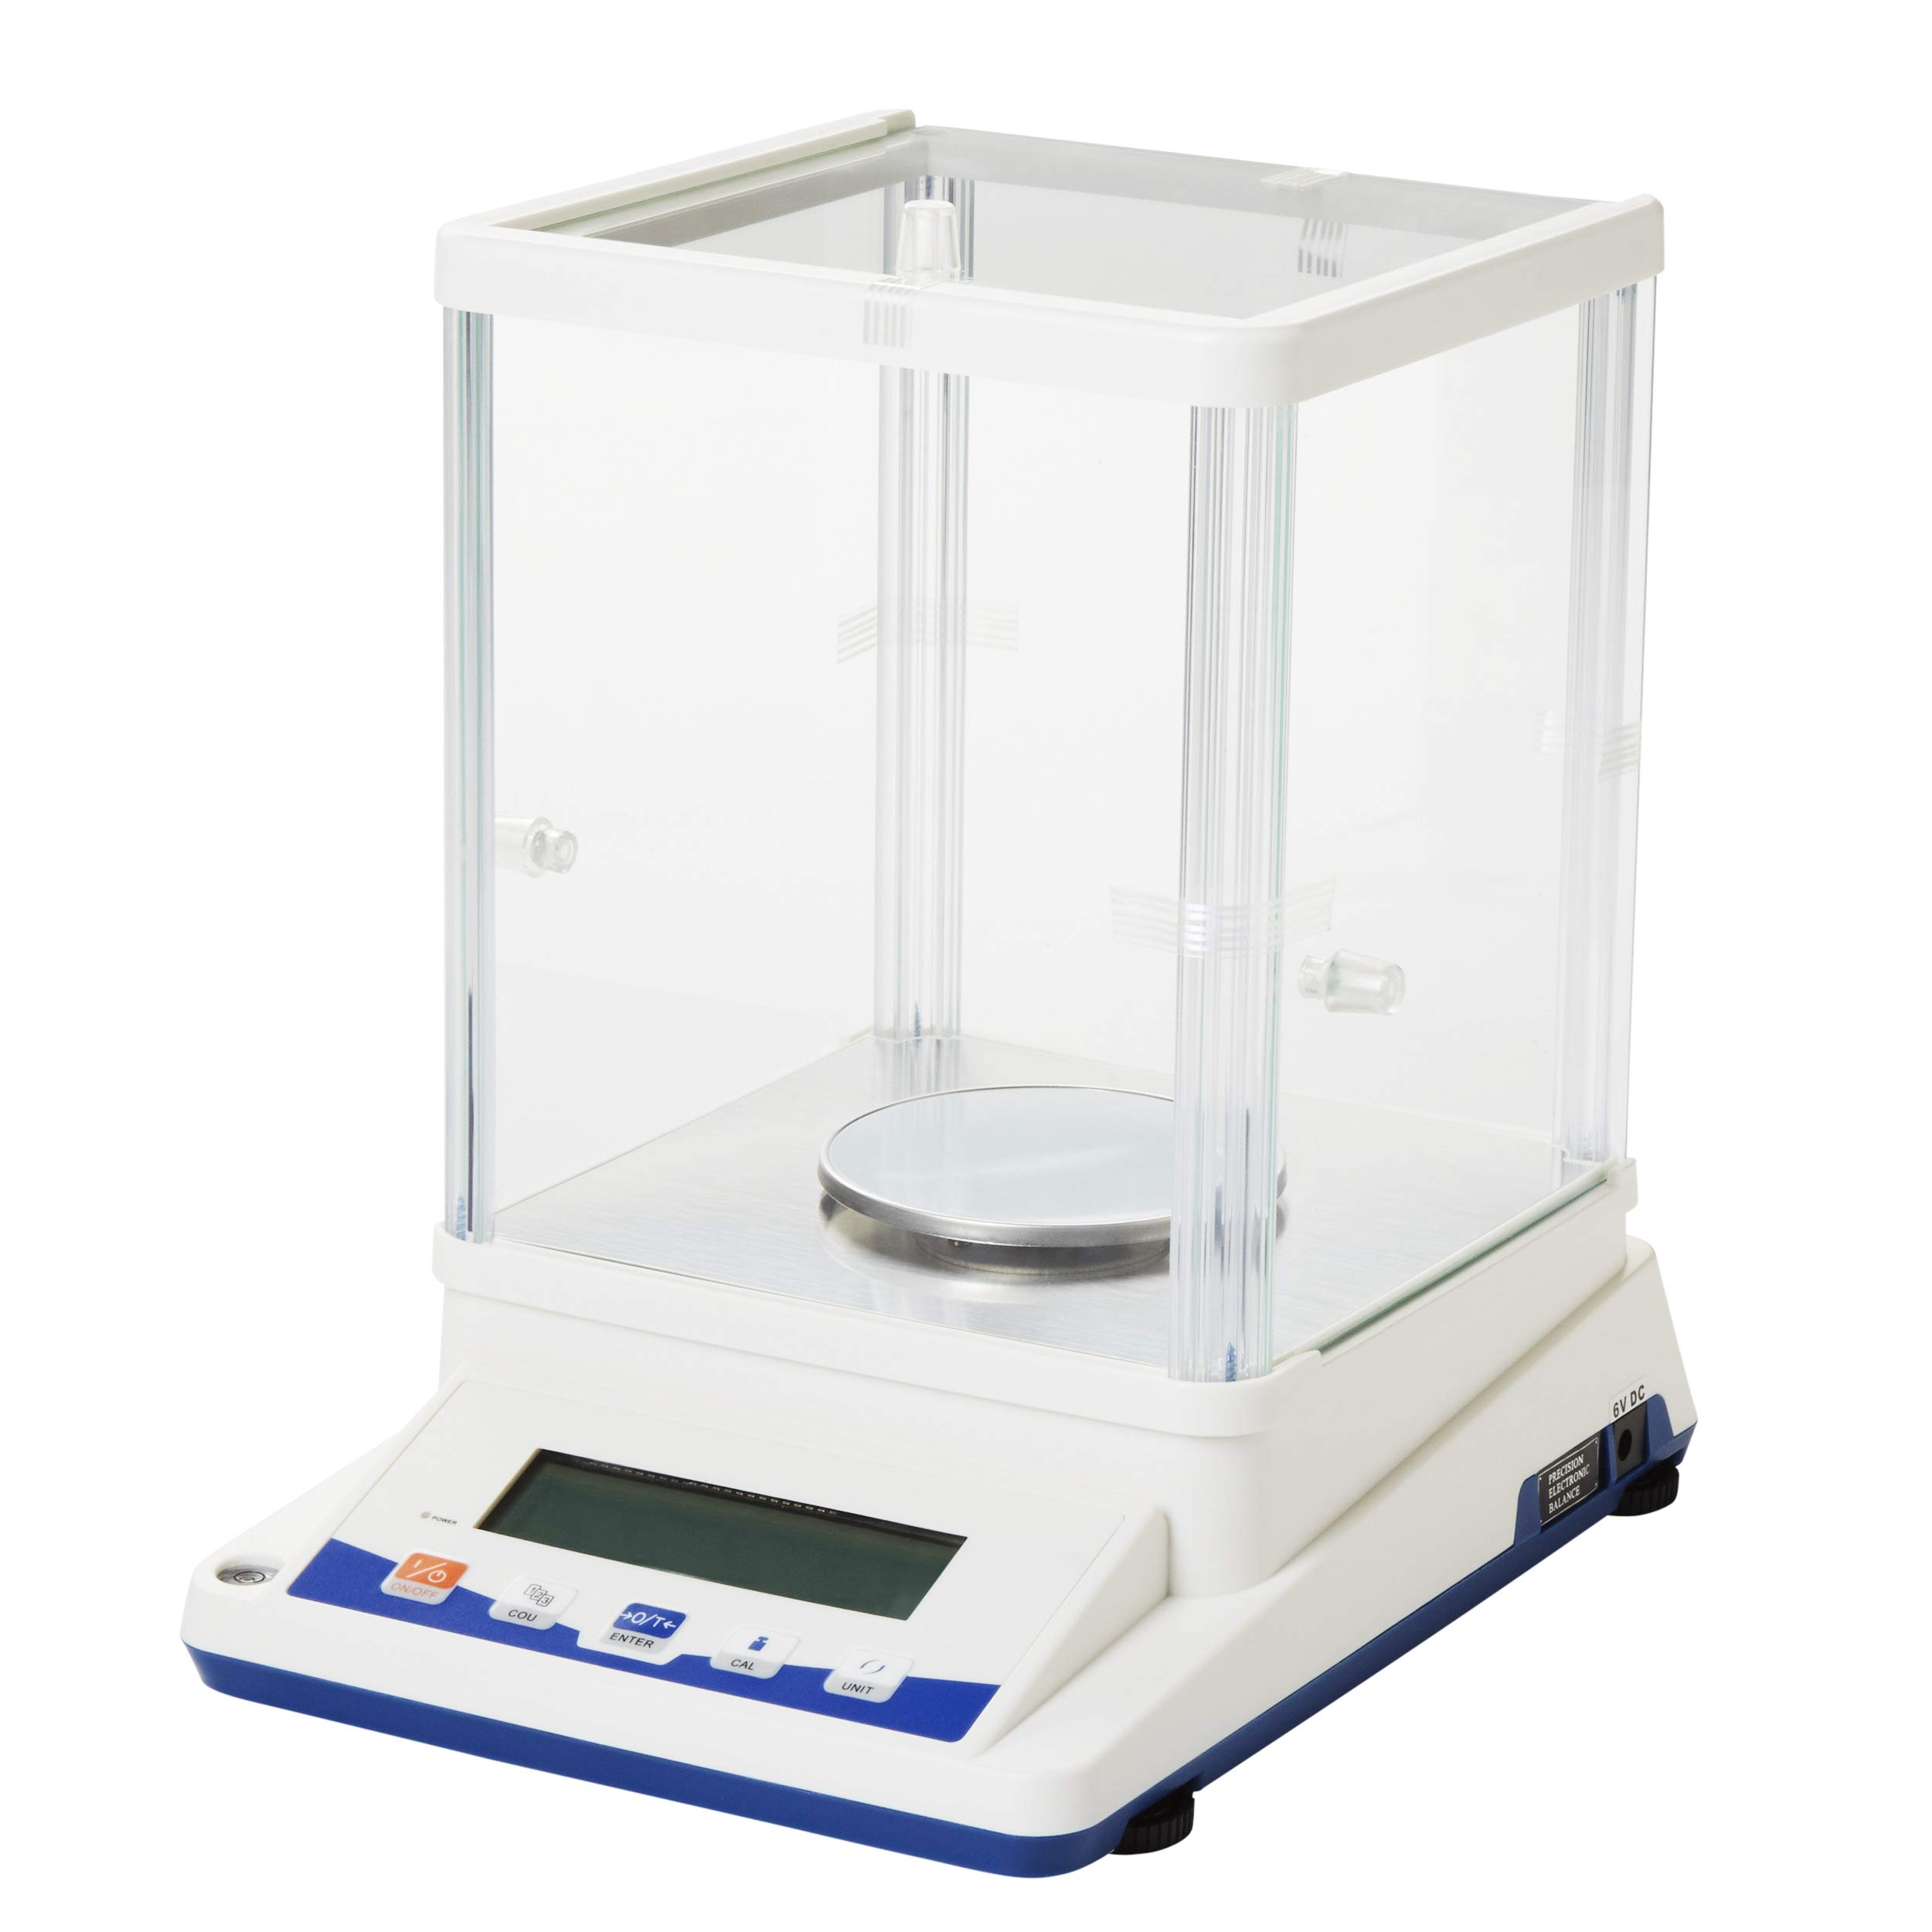 1mg Digital Analytical Balance Electronic Scale Precision Lab Balance with Glass Chamber, 100X0.001g by Microyn